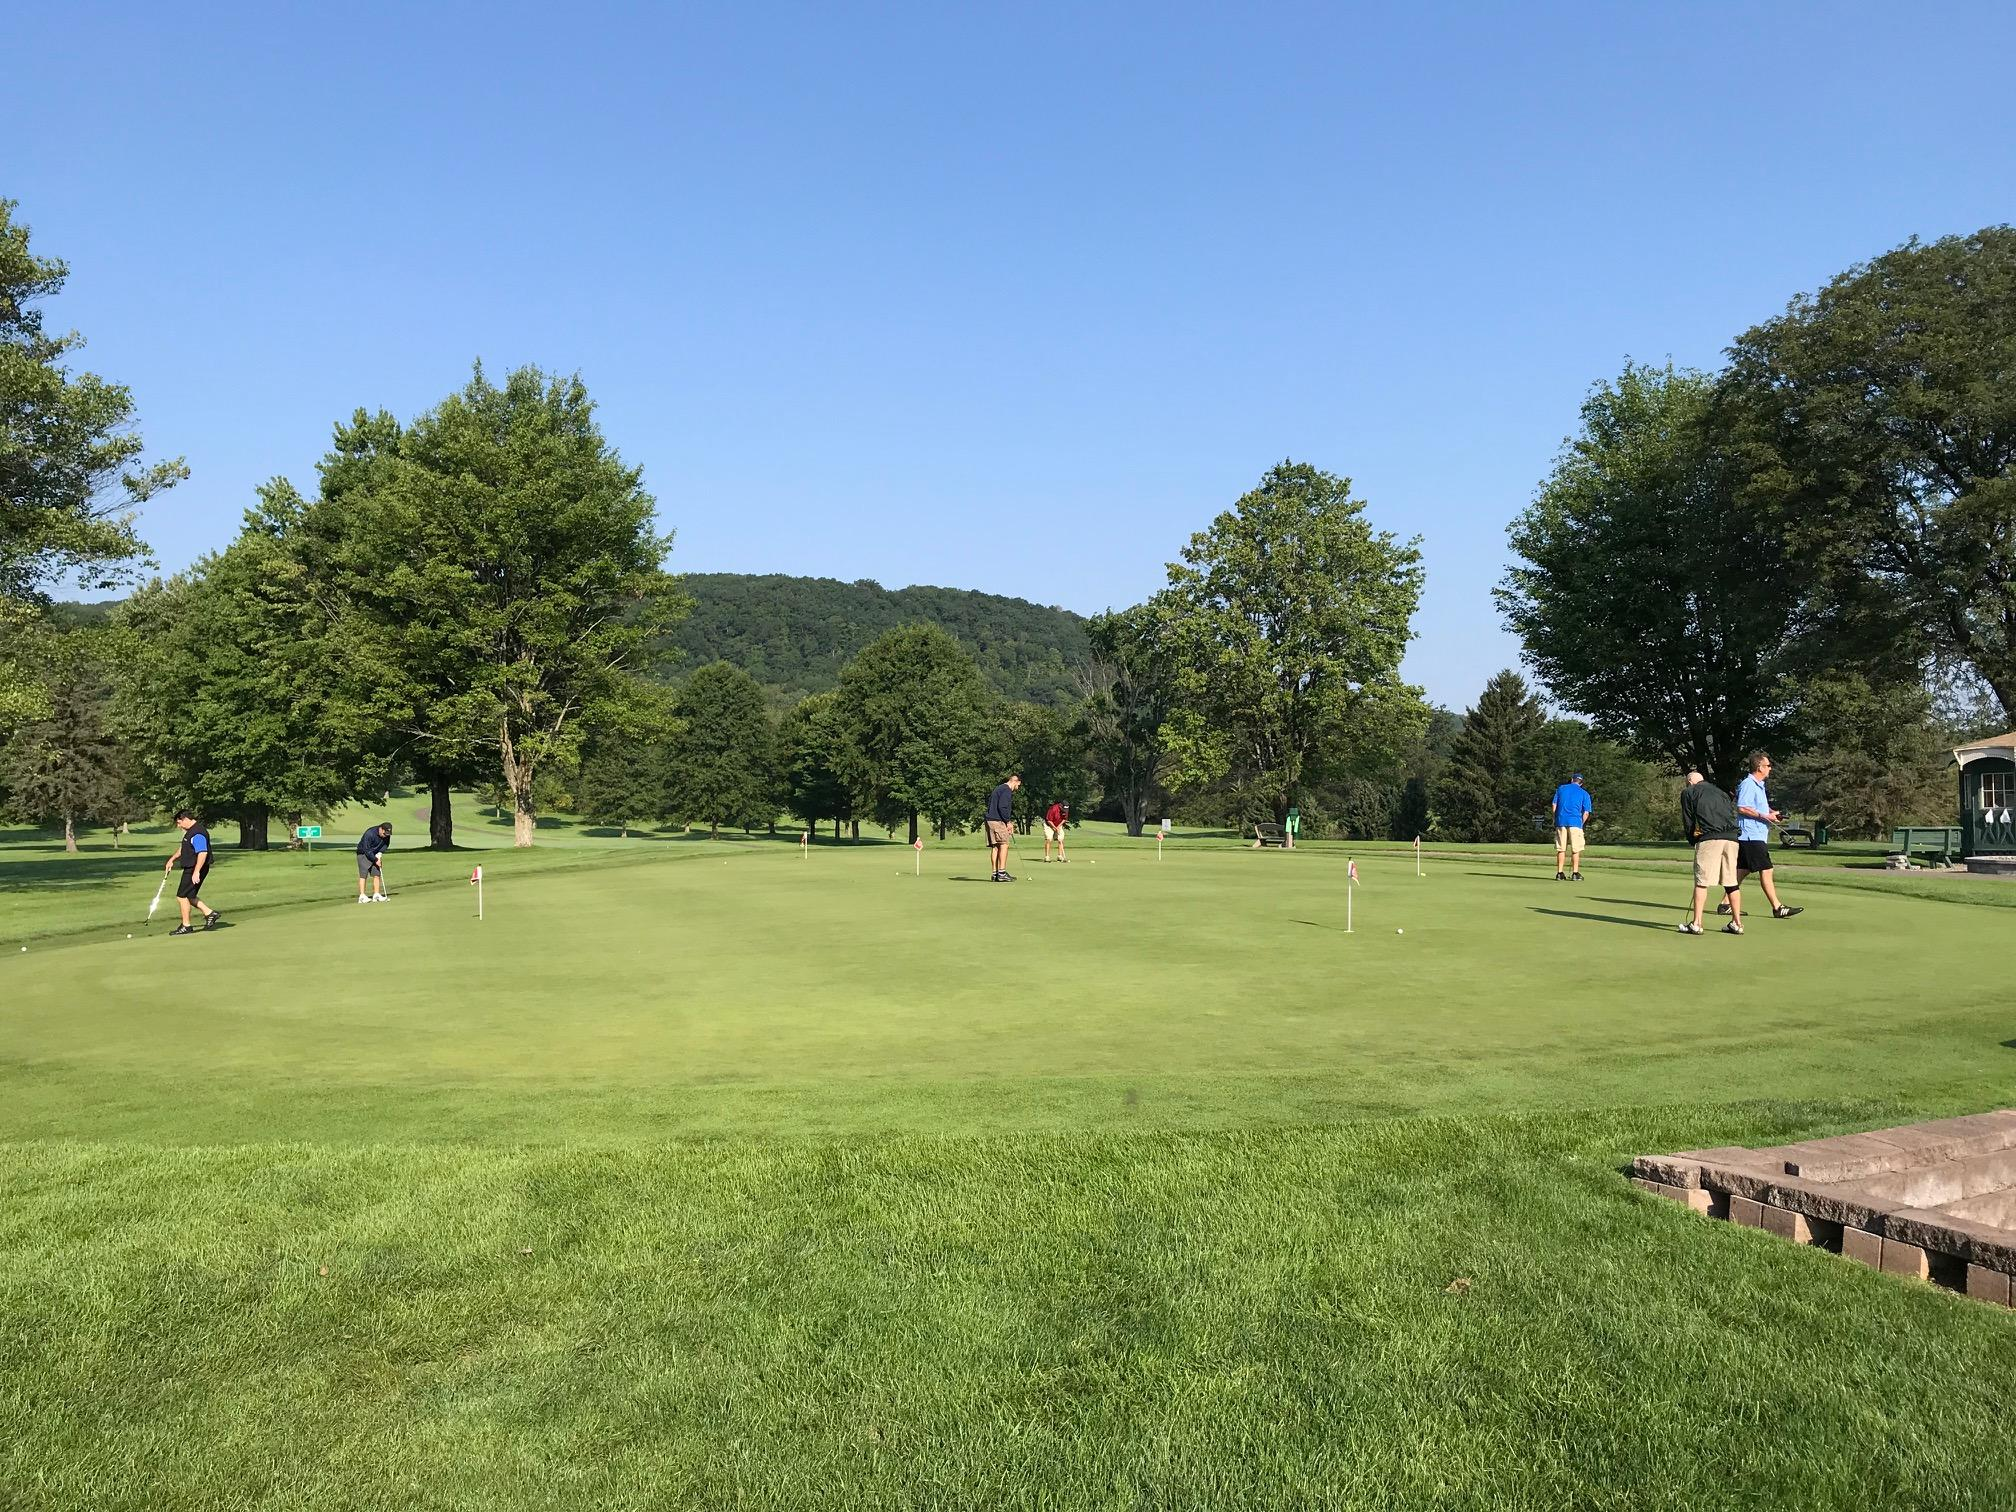 Fourth Annual Miracle Mile Golf Tournament to Benefit United Way of the Southern Tier